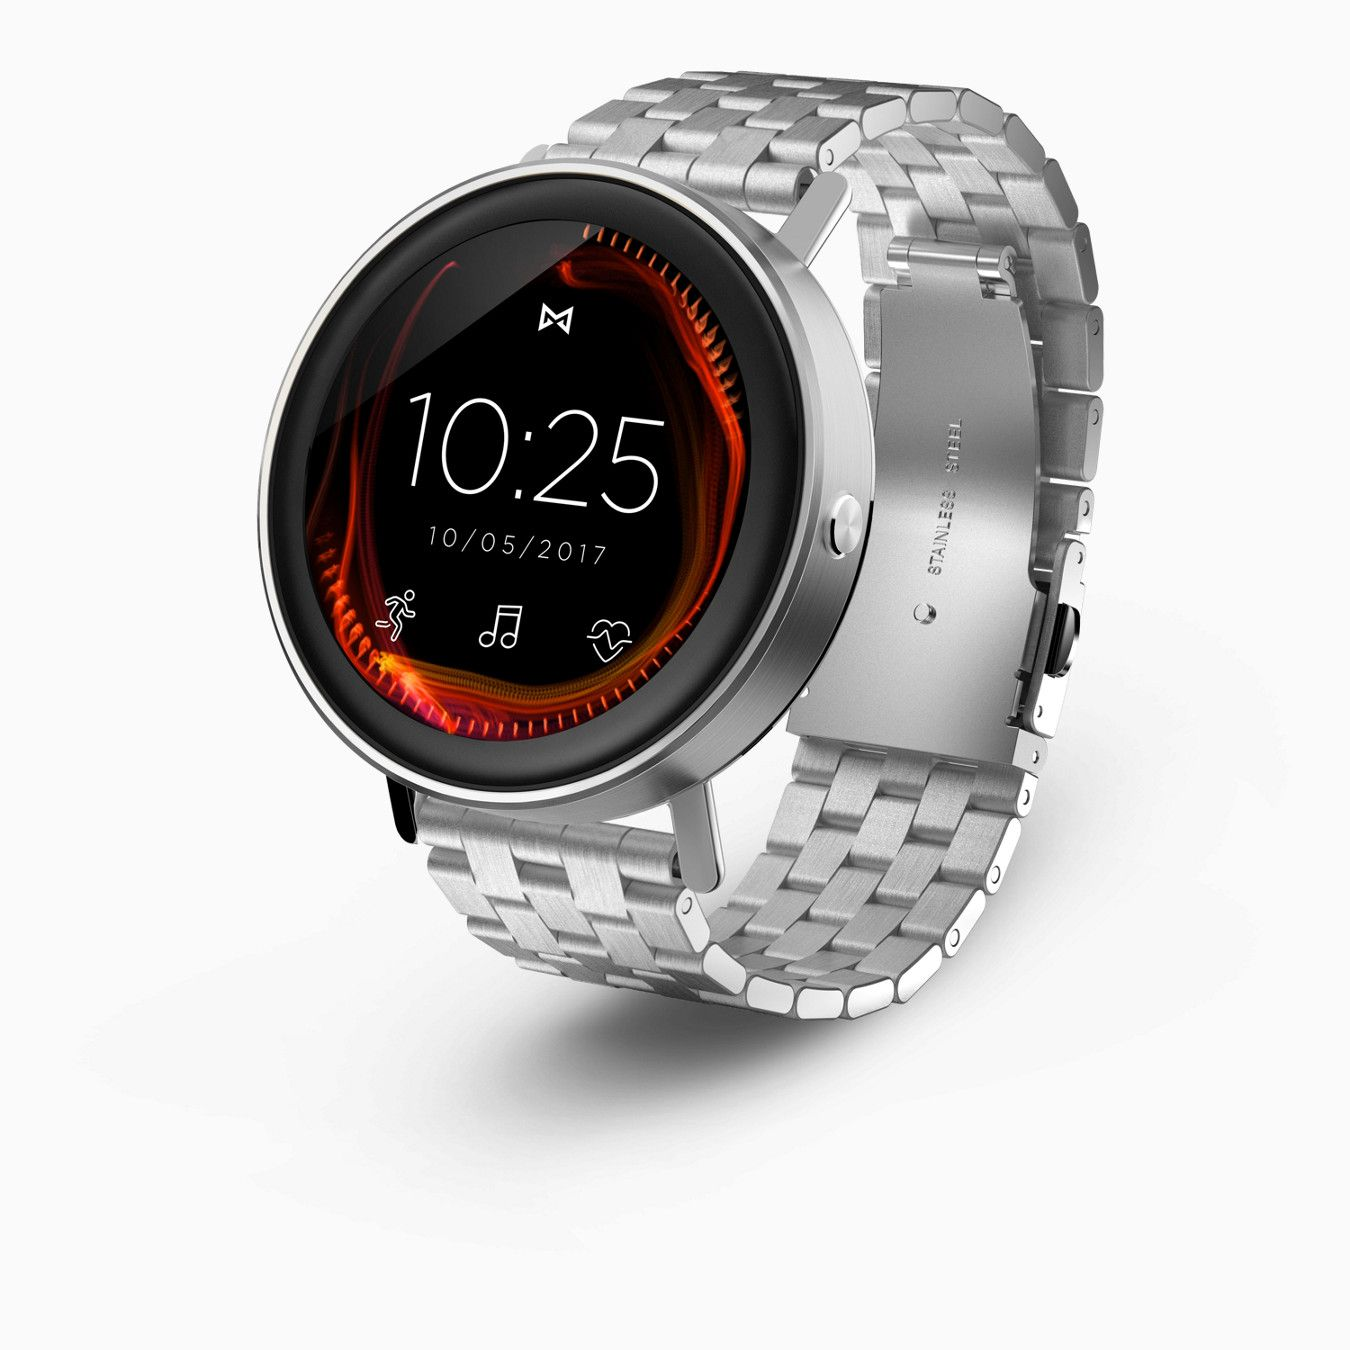 Misfit Vapor Take Your Watch Style To The Next Level With A Misfit Vapor Smartwatch Smart Watch Misfit Wearables Vapor